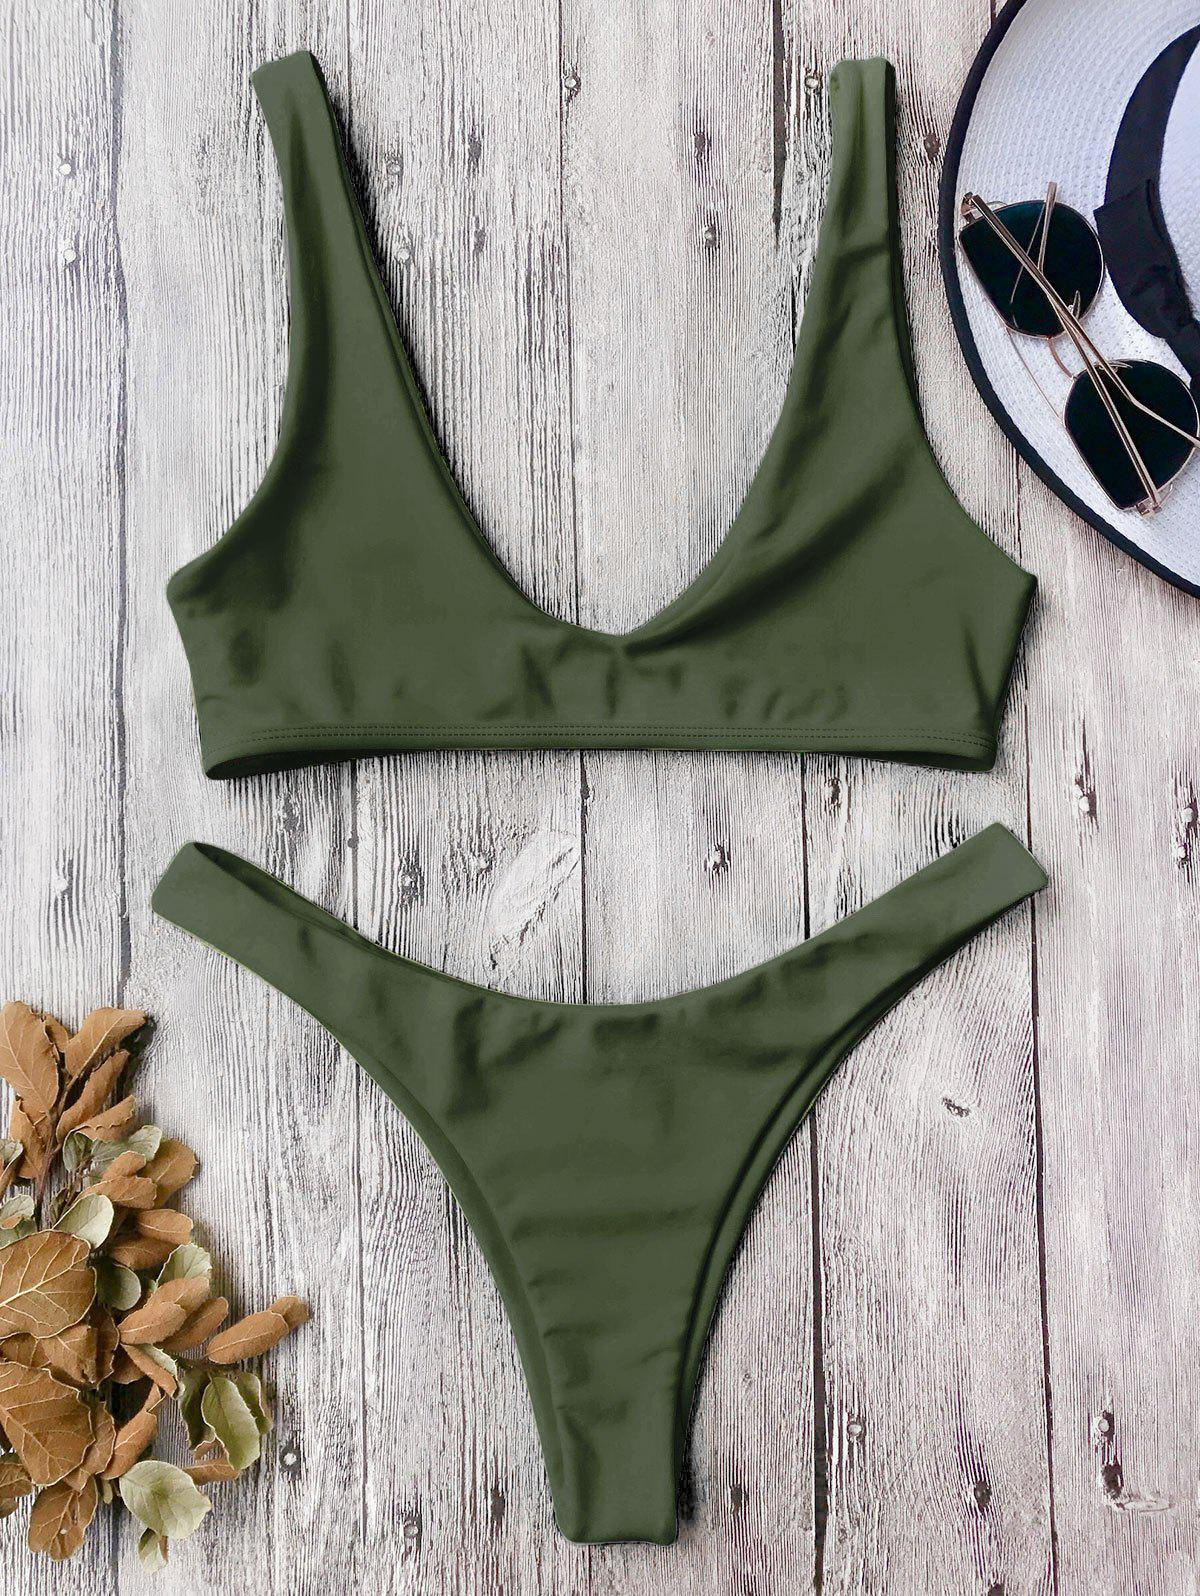 High Cut Scoop Neck Bikini SetWOMEN<br><br>Size: S; Color: ARMY GREEN; Swimwear Type: Bikini; Gender: For Women; Material: Polyester,Spandex; Bra Style: Bralette; Support Type: Wire Free; Neckline: Scoop Neck; Pattern Type: Solid; Waist: Low Waisted; Elasticity: Elastic; Weight: 0.2000kg; Package Contents: 1 x Top  1 x Bottoms;